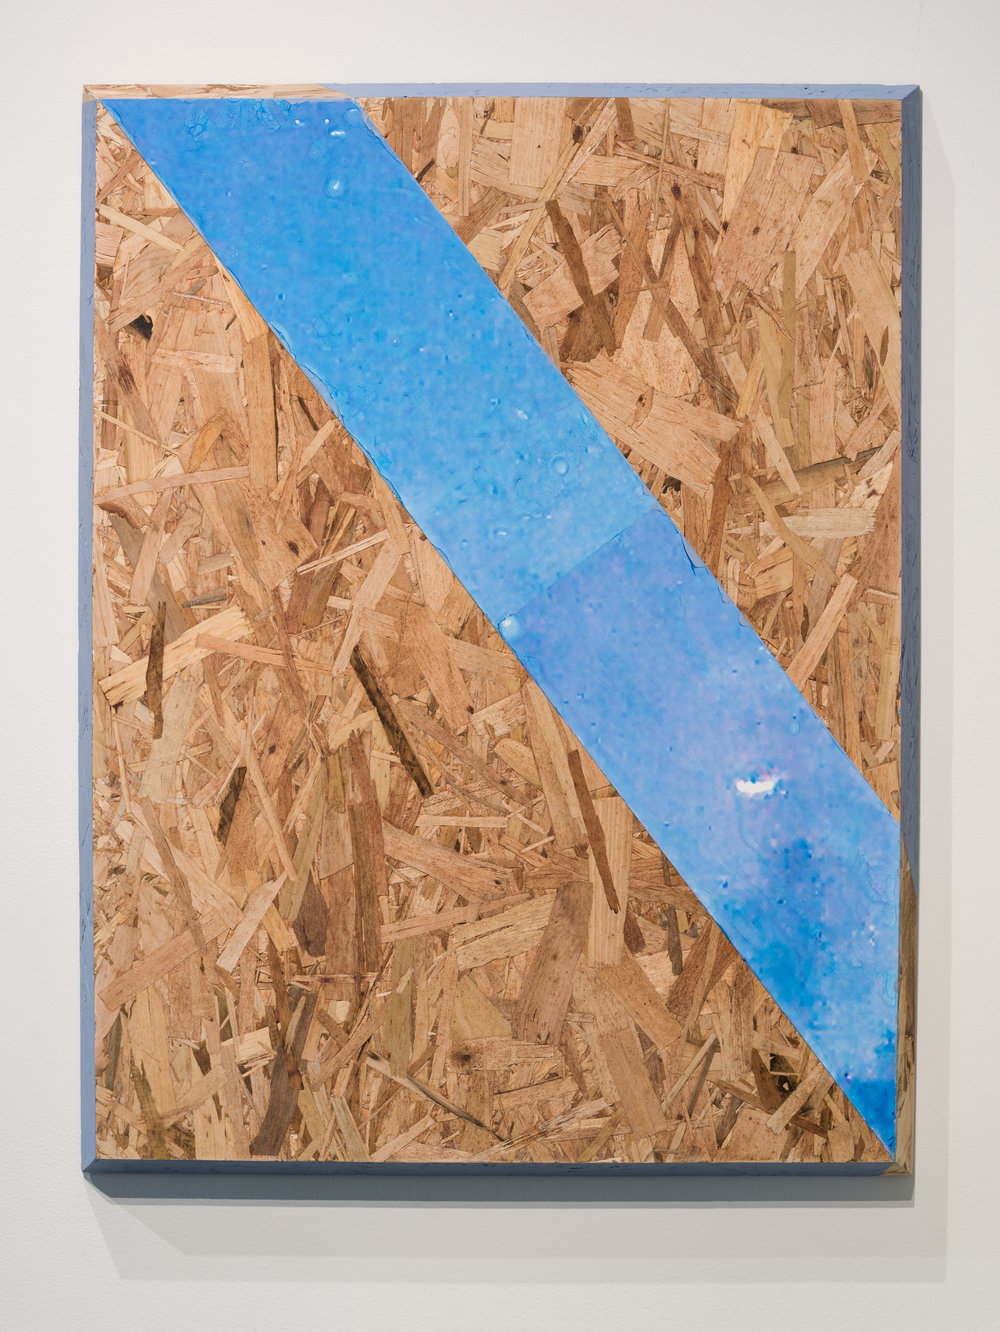 81319_submitter_file1 (ufo) , 2017  Gesso, acrylic, pigment transfer, oriented strand board  31 x 23 in.